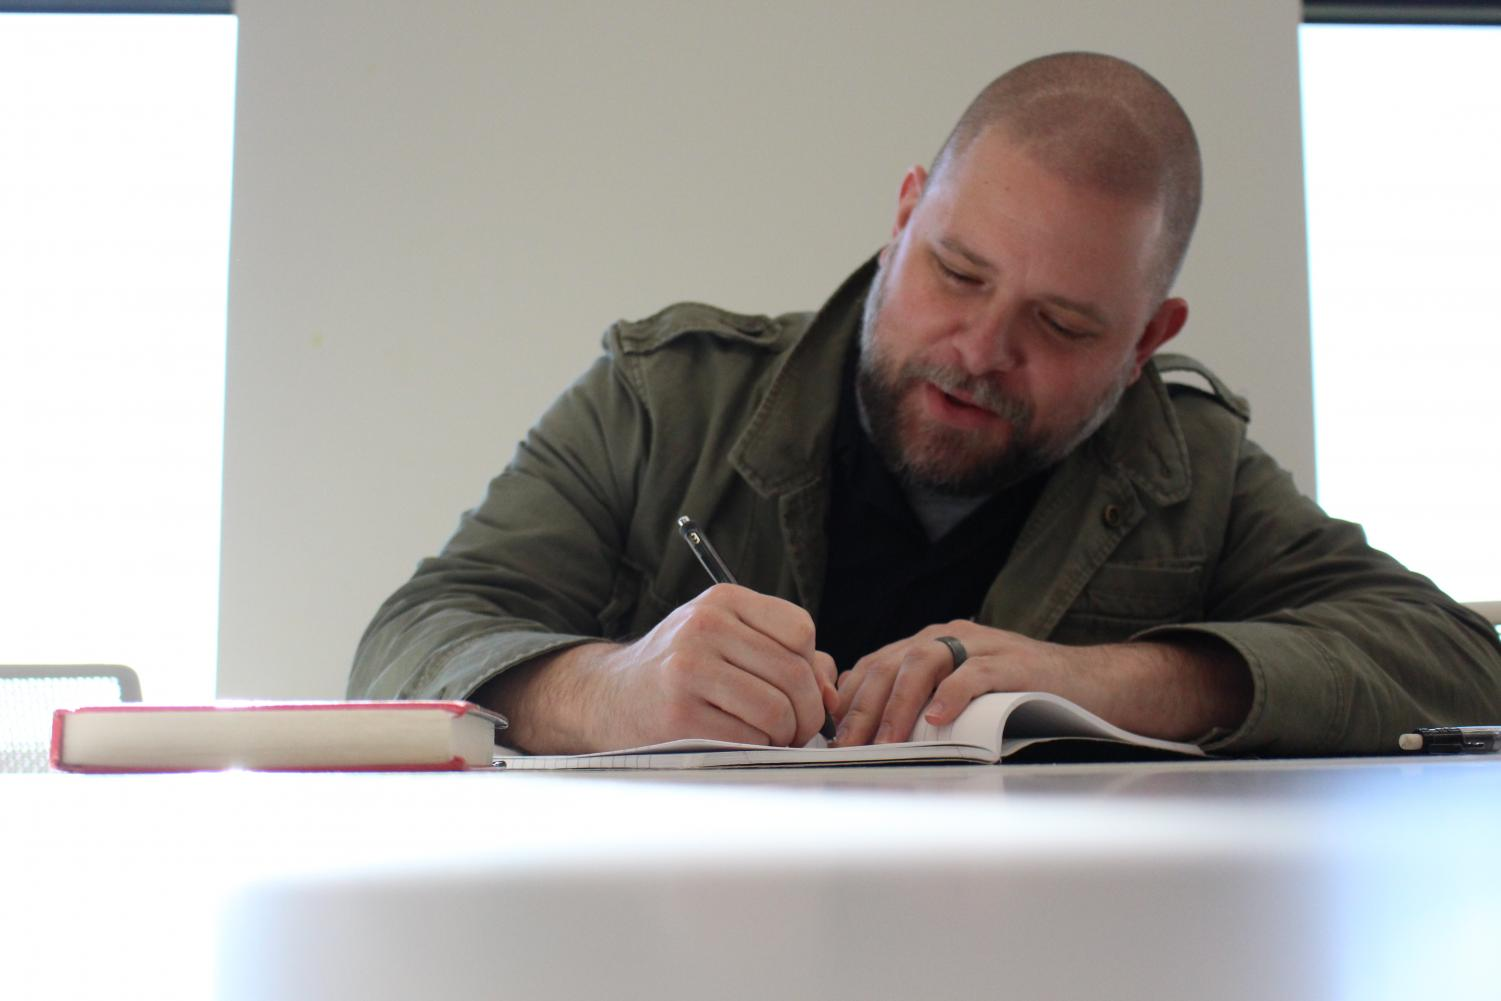 Aaron Schwartz writes in a composition notebook.